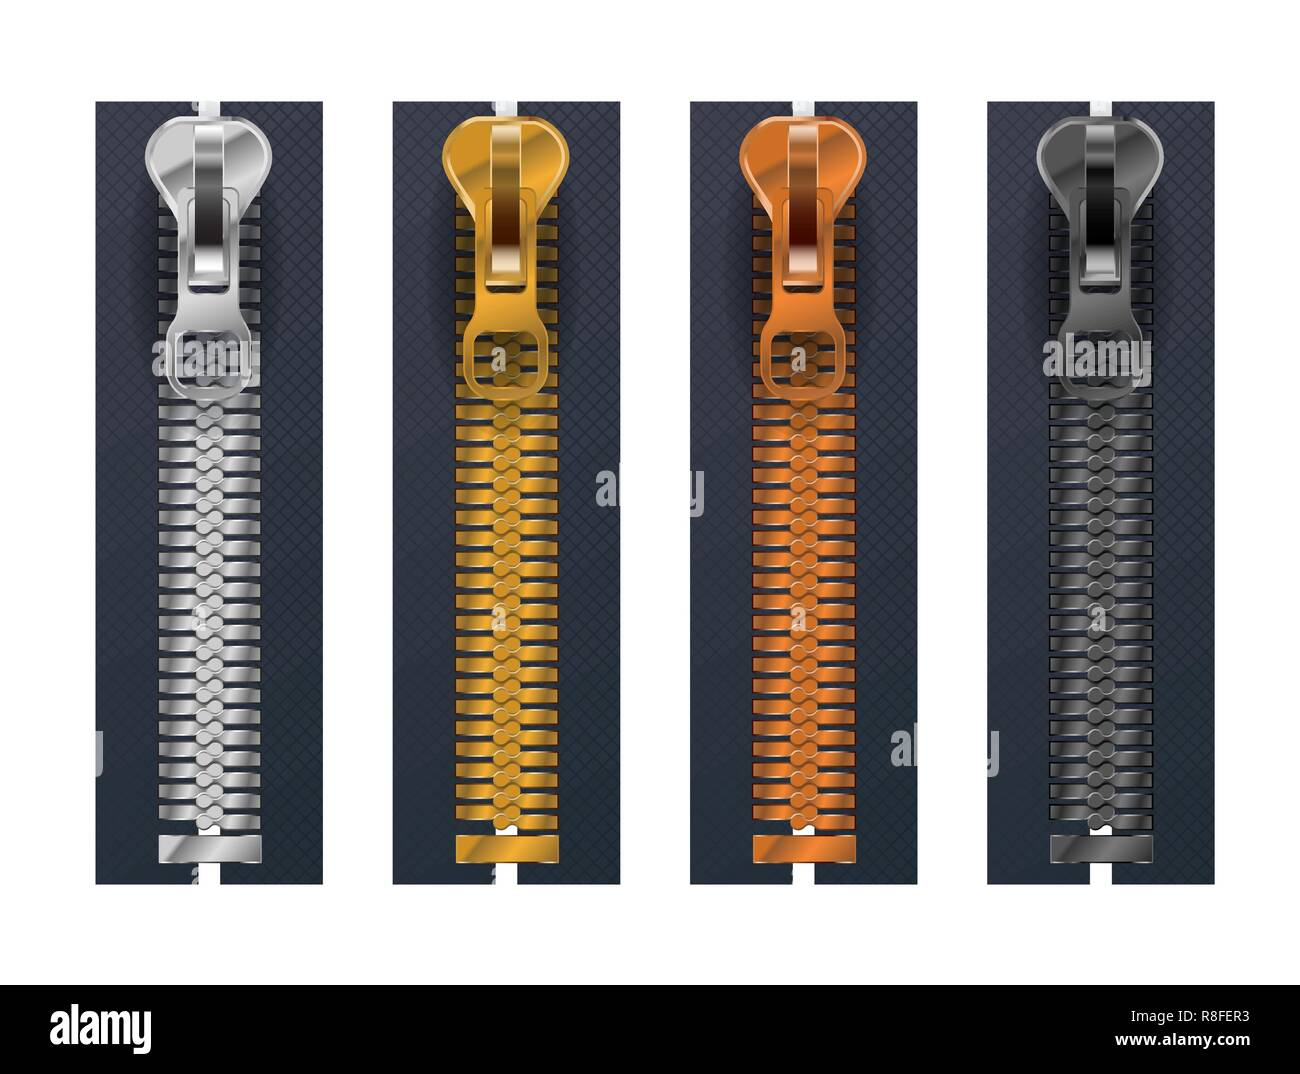 Set of different metallic fasteners, closed zippers isolated on white - Stock Image